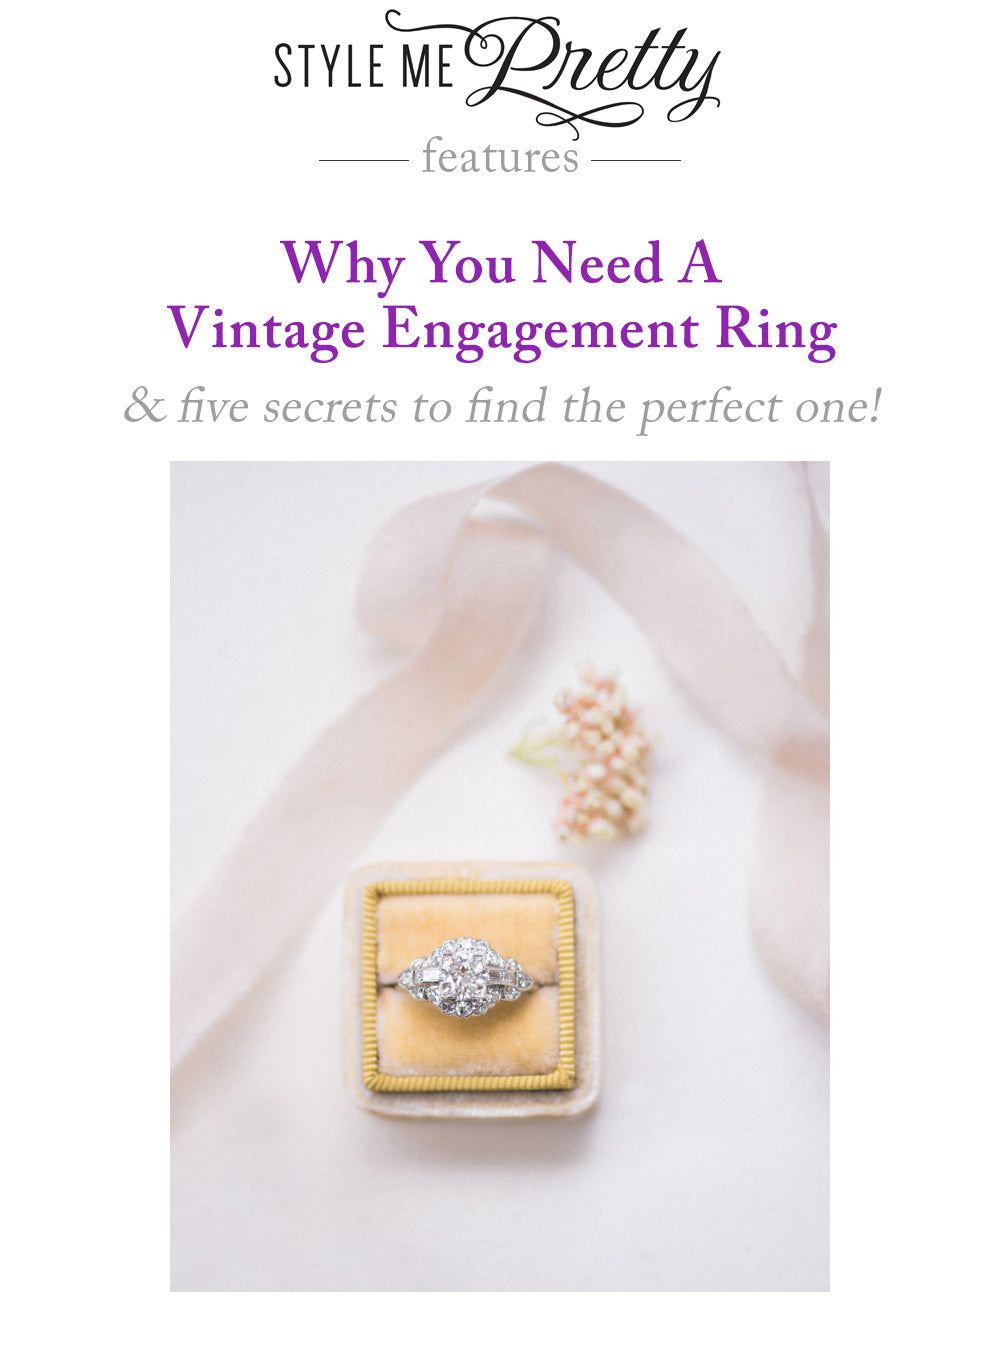 style-me-pretty-vintage-engagement-ring-trumpet-horn0-shopping-tips